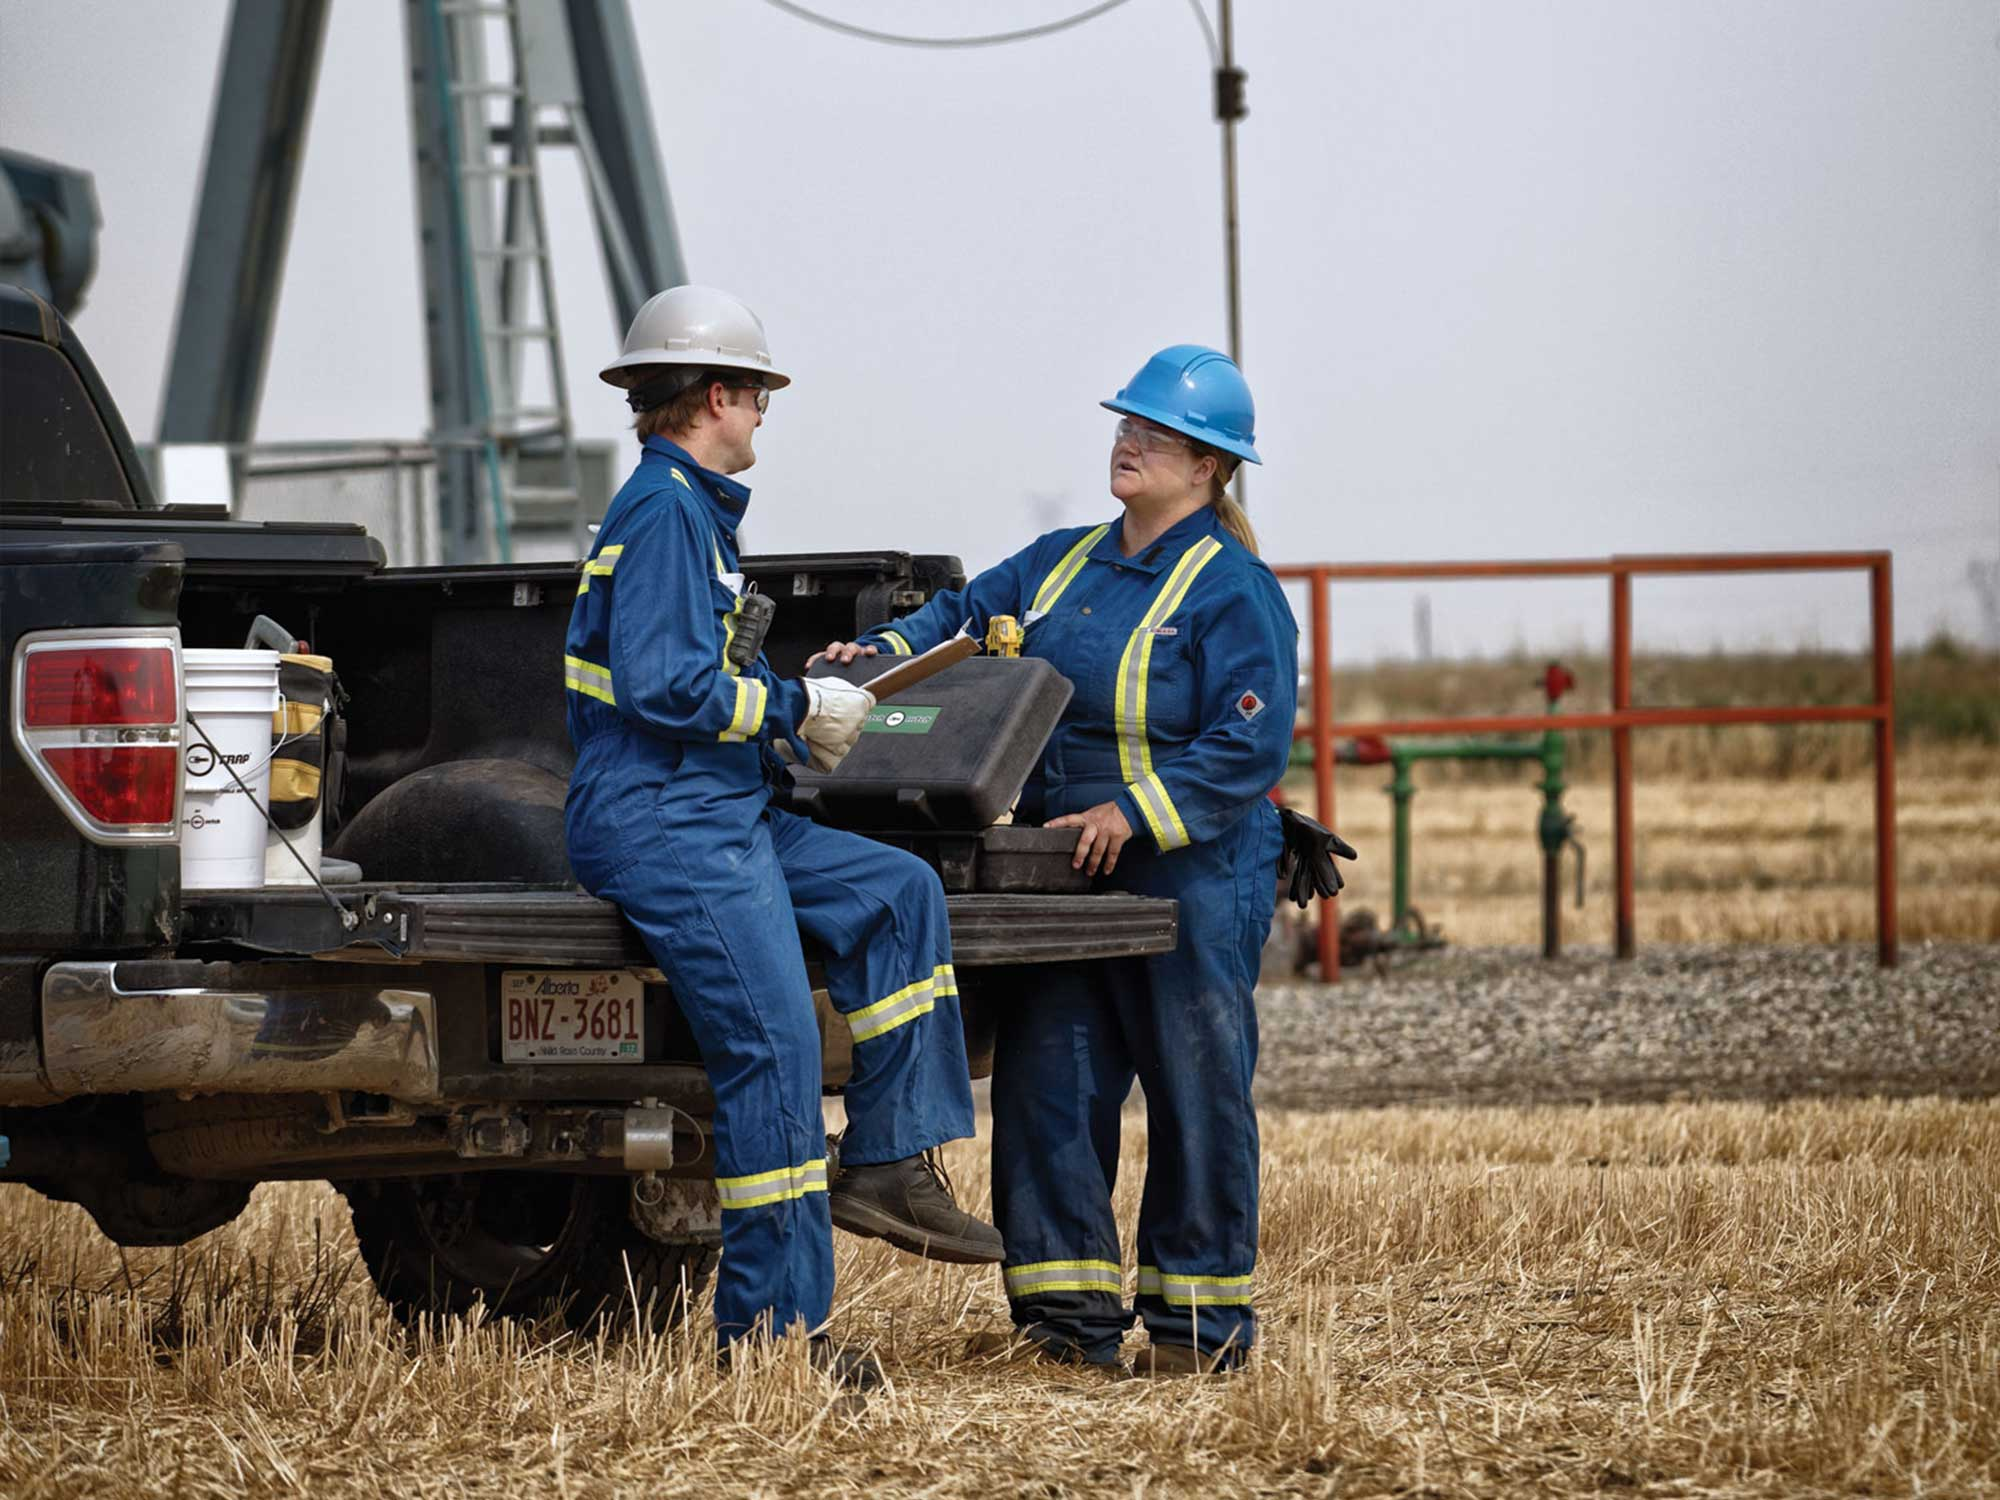 Brand photography for Energy Safety Canada by Jason Stand of two workers in front of an oil derrick on a truck talking by studio forum